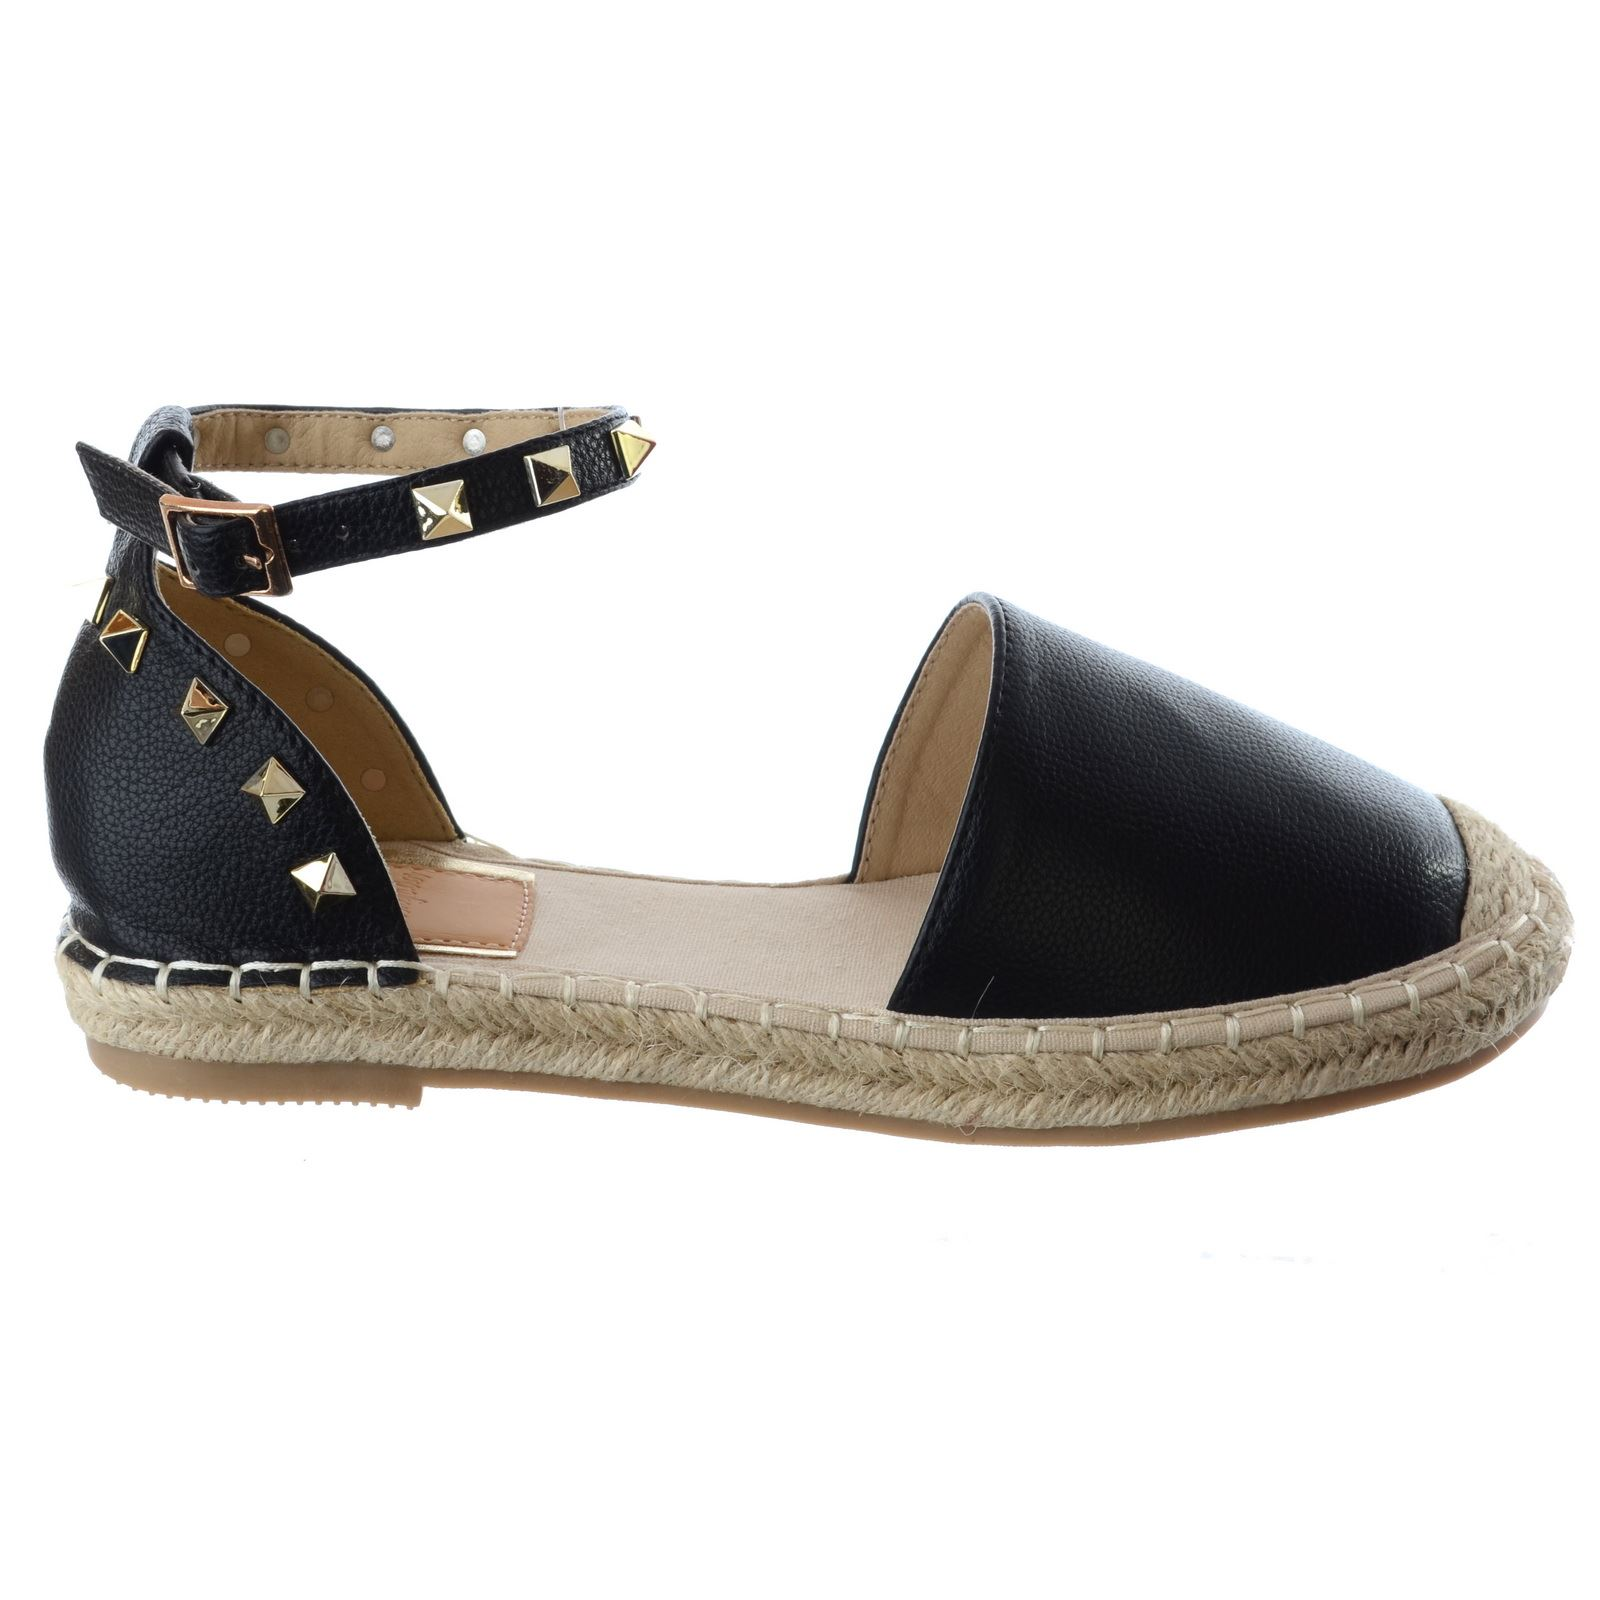 Flat heel sandals images - Womens Low Flat Heel Ankle Strap Studded Summer